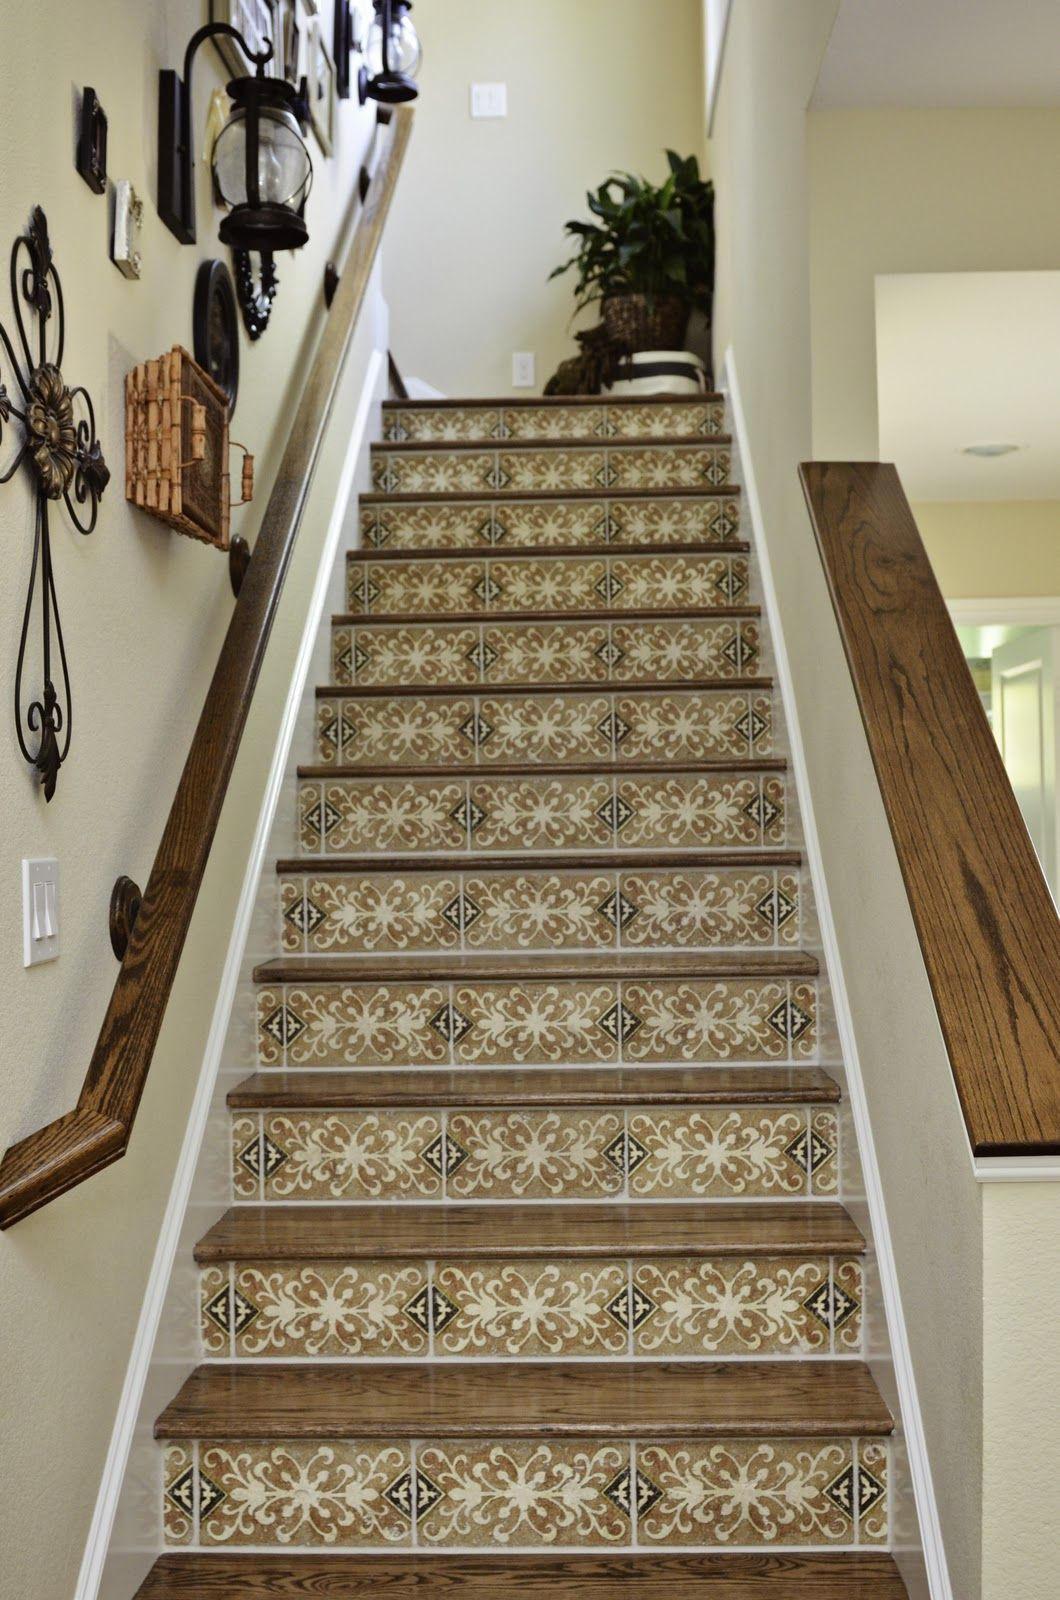 Tiles On Stair Risers For The Home Pinterest Tile